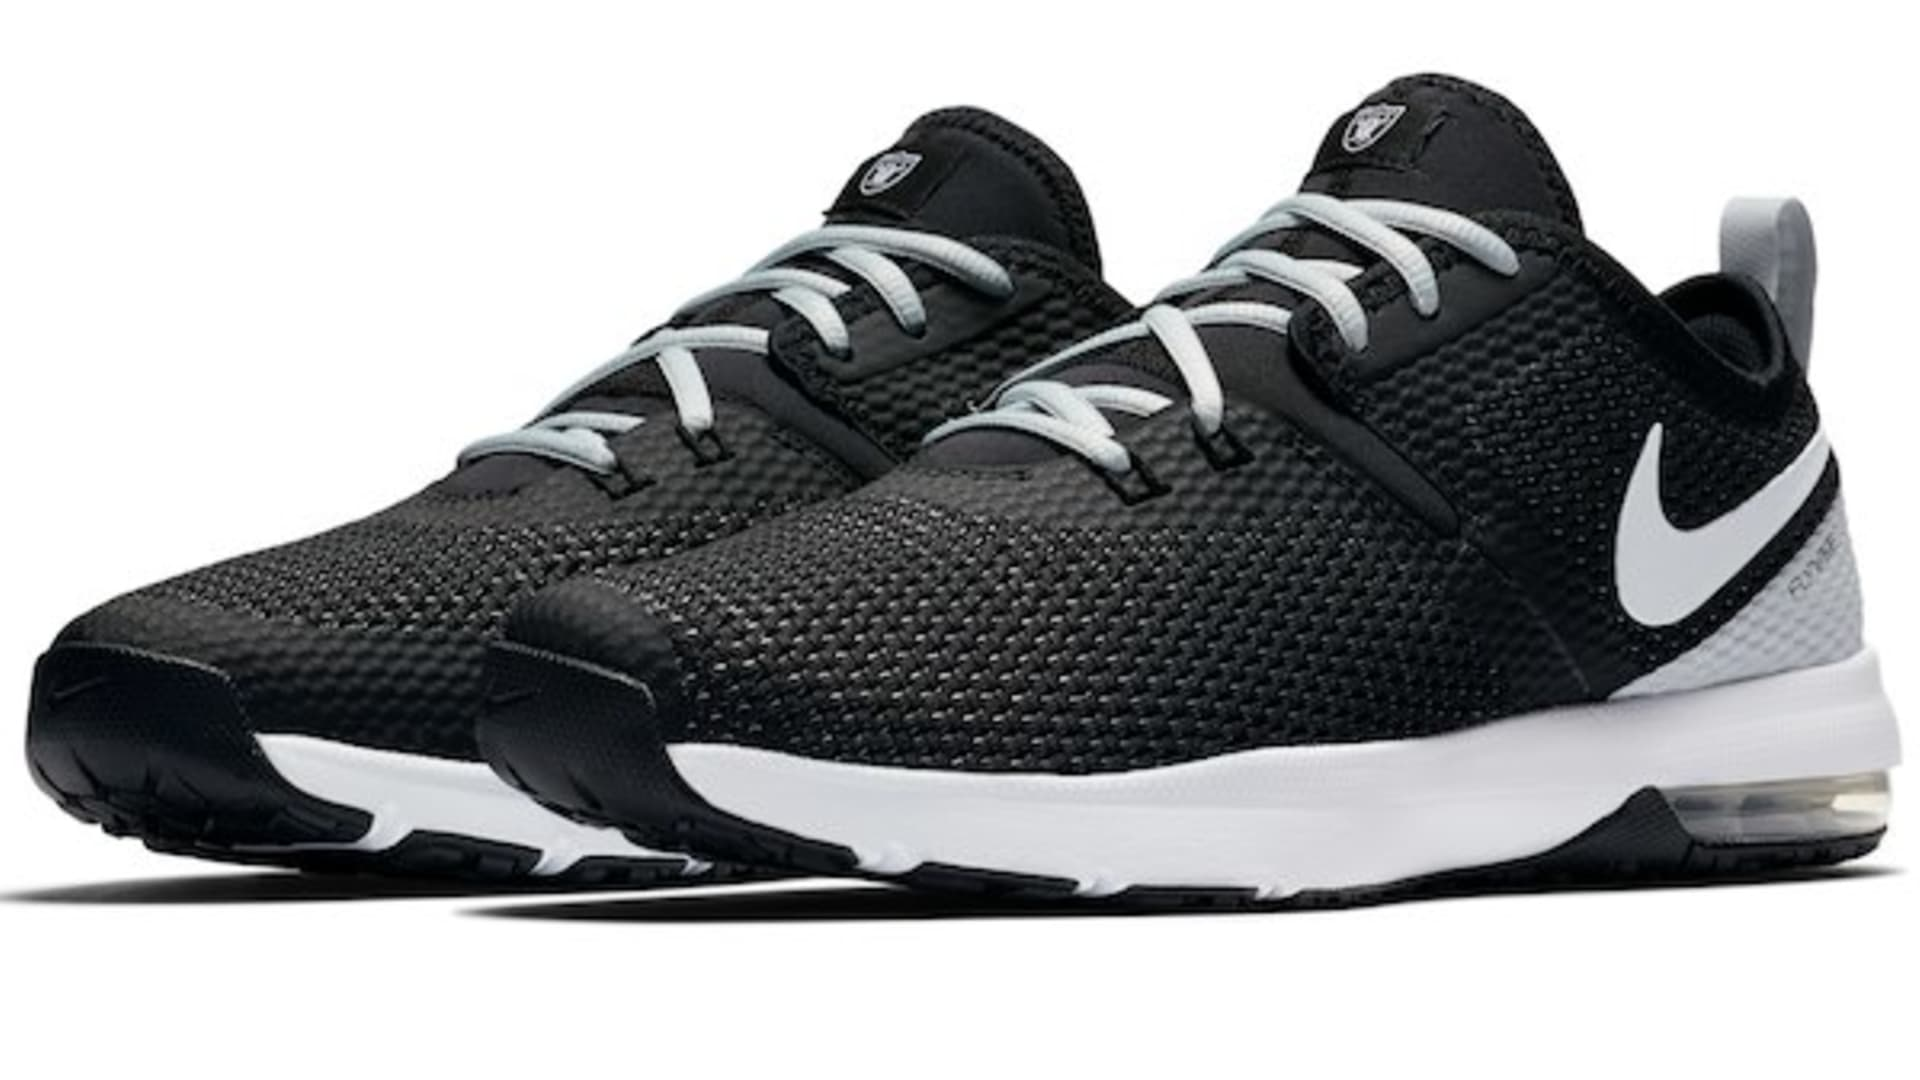 Check out these Oakland Raiders Nike Air Max Typha 2 shoes